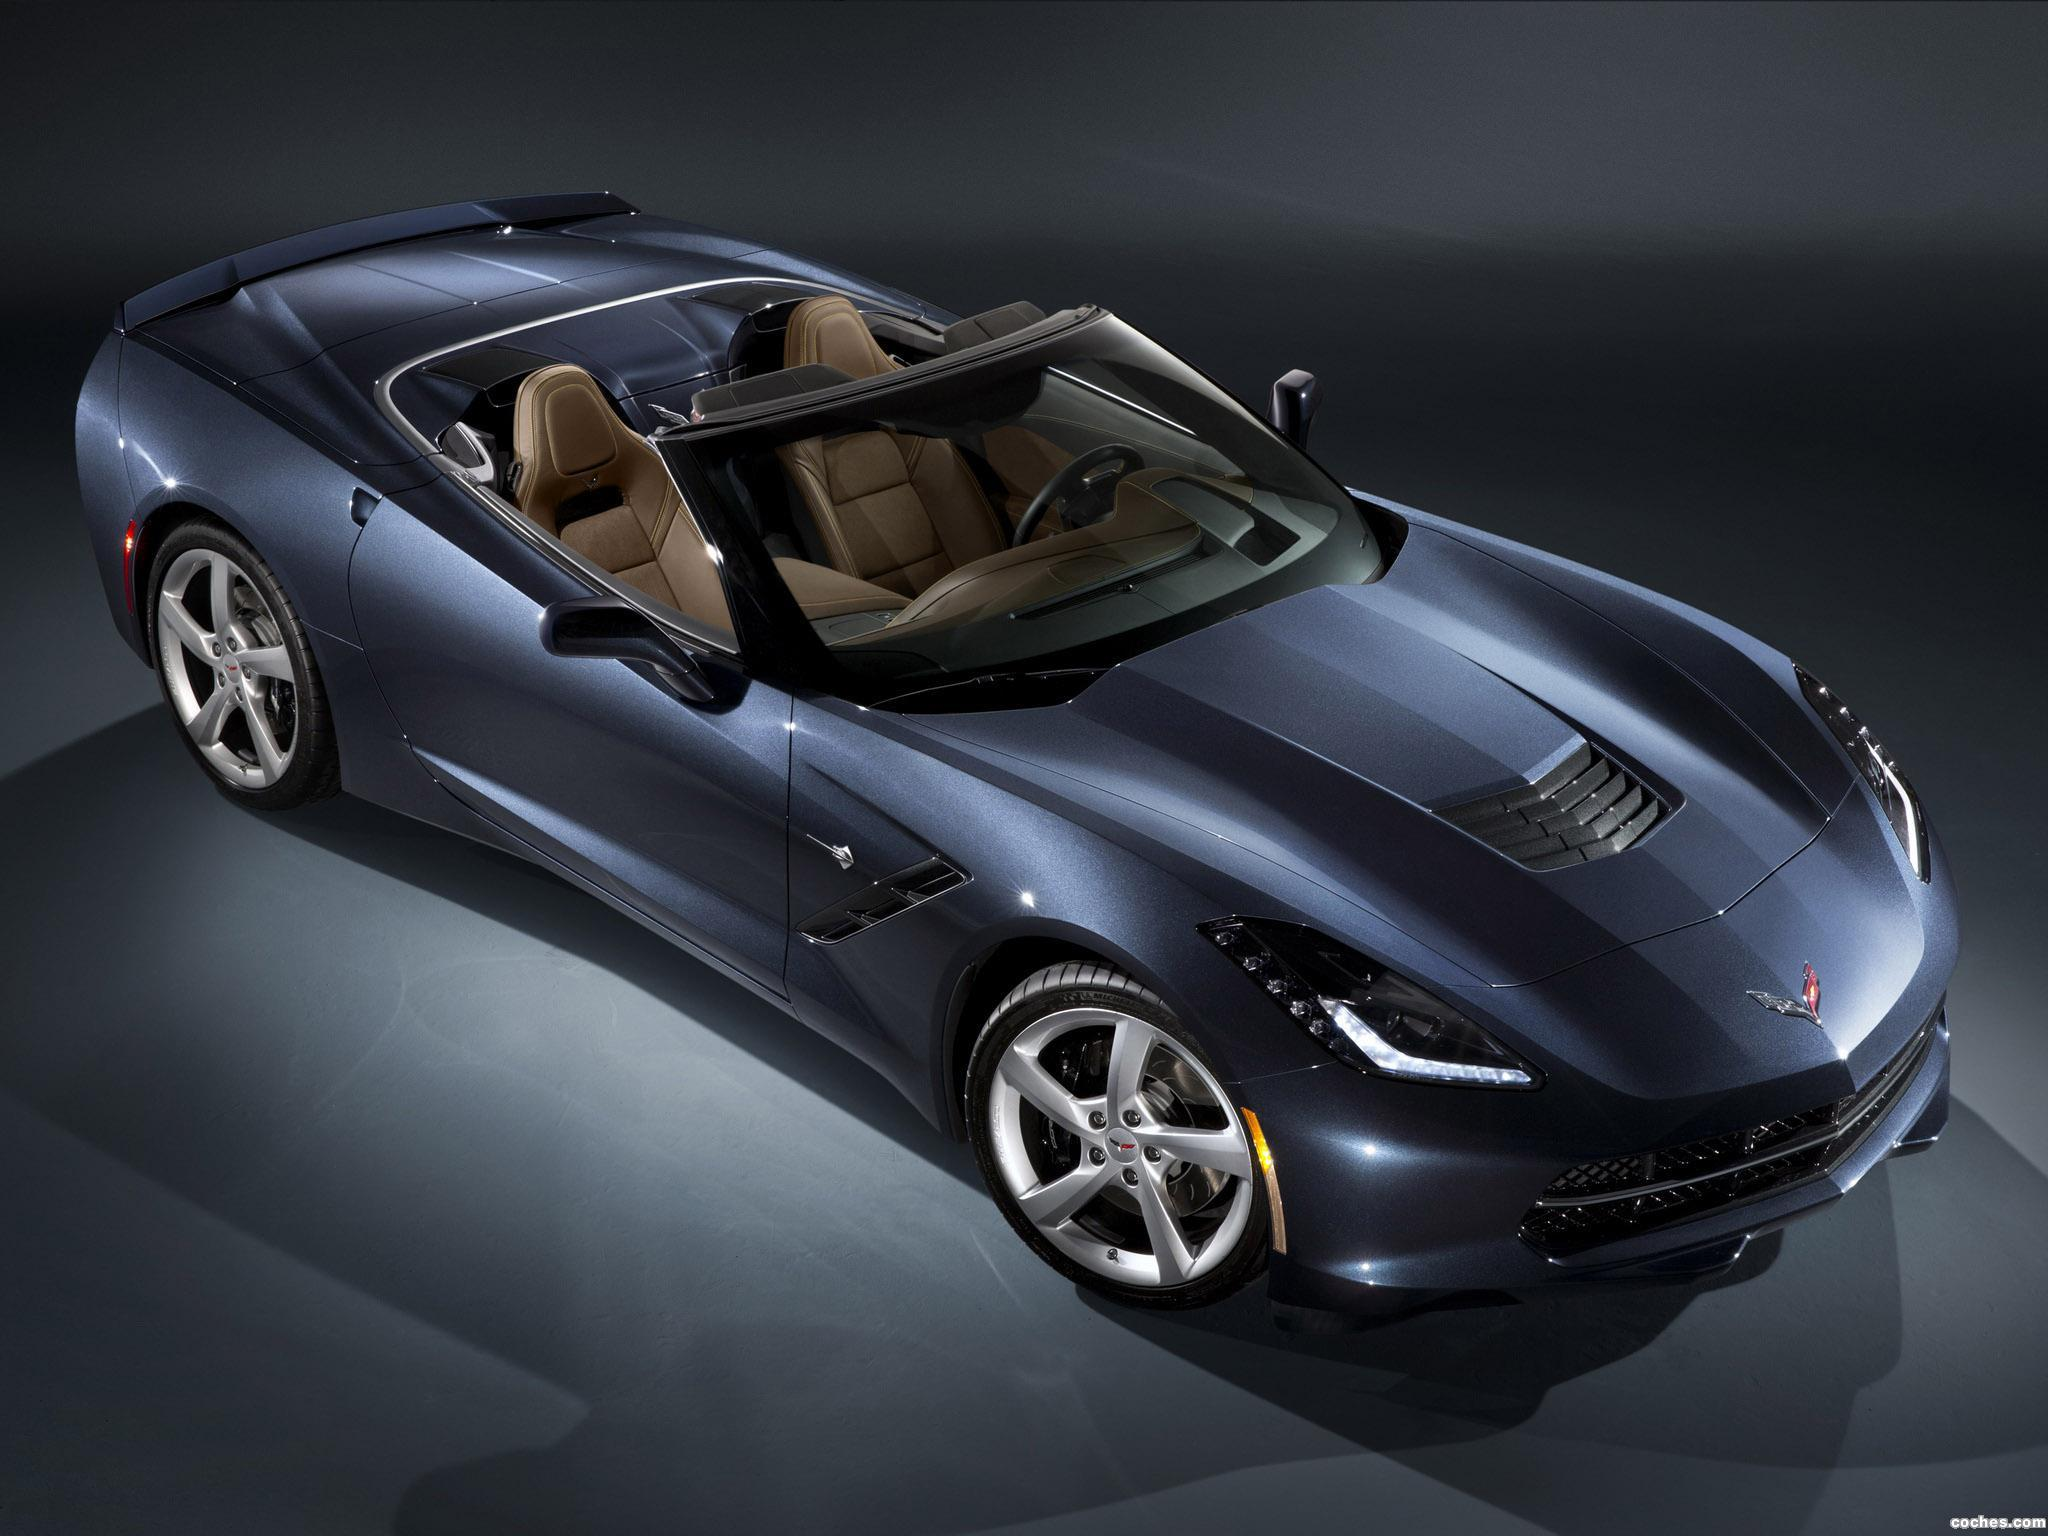 Foto 0 de Chevrolet Corvette Stingray Convertible C7 2013